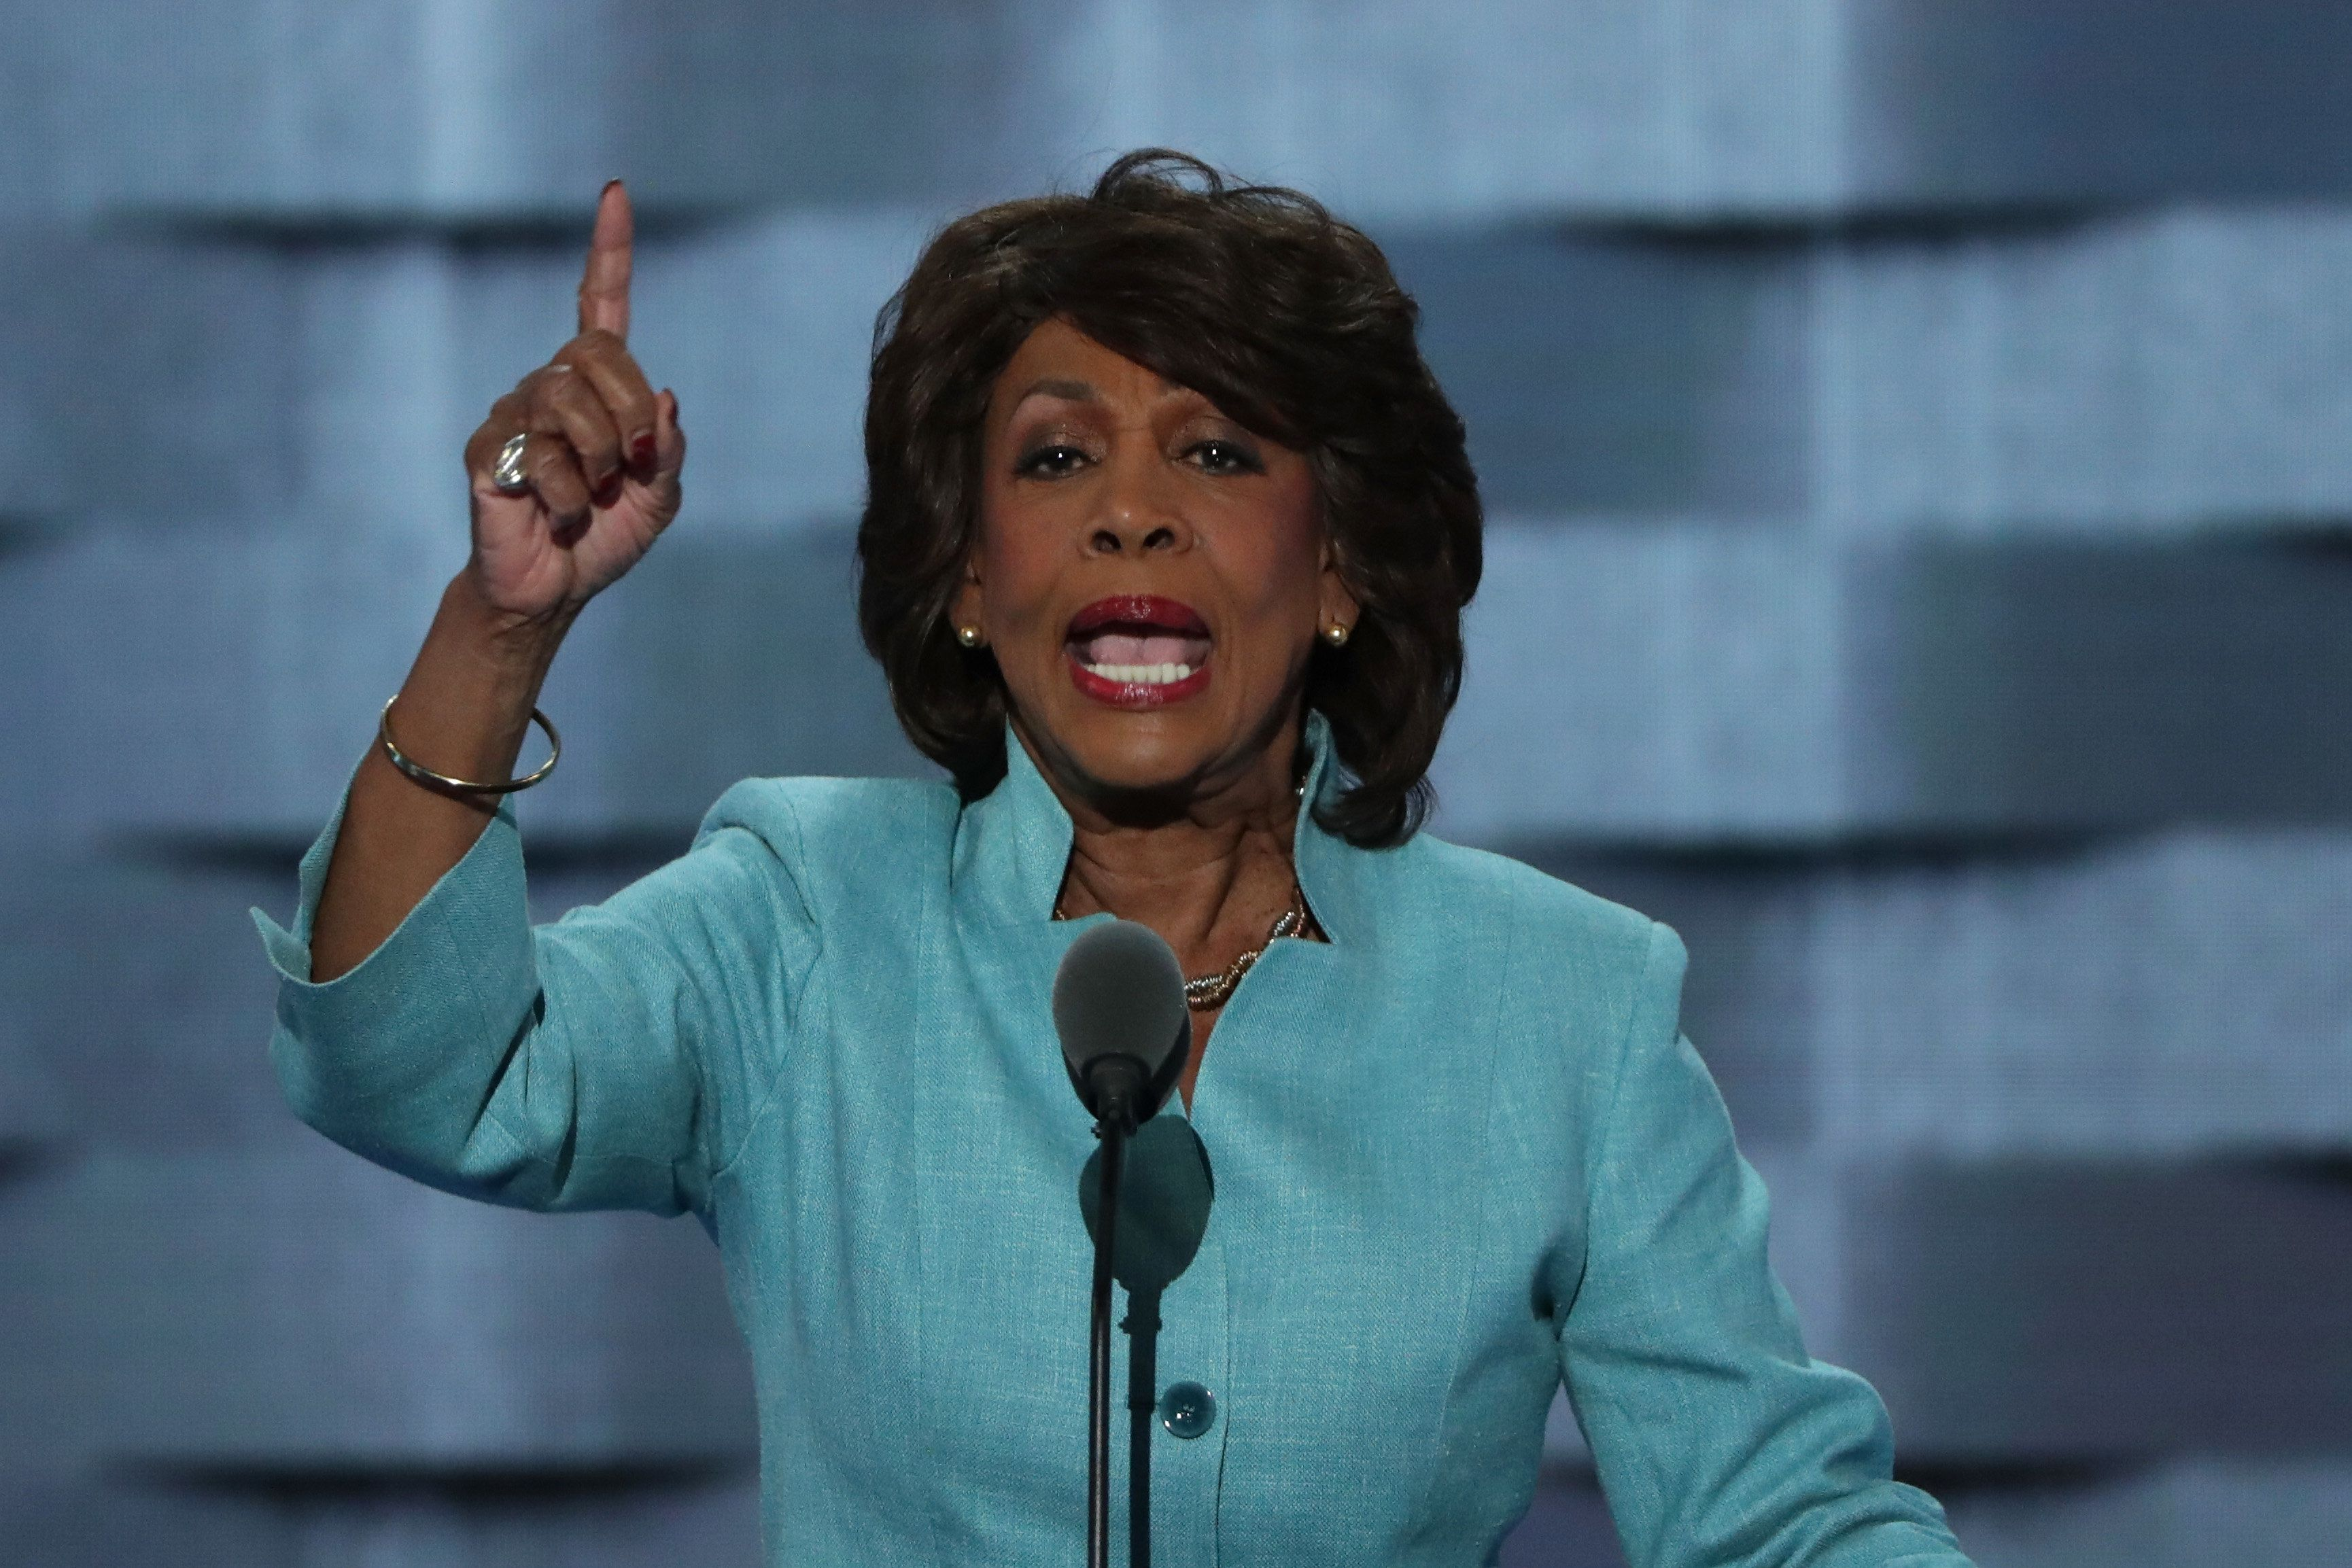 PHILADELPHIA, PA - JULY 27:  U.S. Representative Maxine Waters (D-CA) gestures as she delivers remarks on the third day of the Democratic National Convention at the Wells Fargo Center, July 27, 2016 in Philadelphia, Pennsylvania. Democratic presidential candidate Hillary Clinton received the number of votes needed to secure the party's nomination. An estimated 50,000 people are expected in Philadelphia, including hundreds of protesters and members of the media. The four-day Democratic National Convention kicked off July 25.  (Photo by Alex Wong/Getty Images)